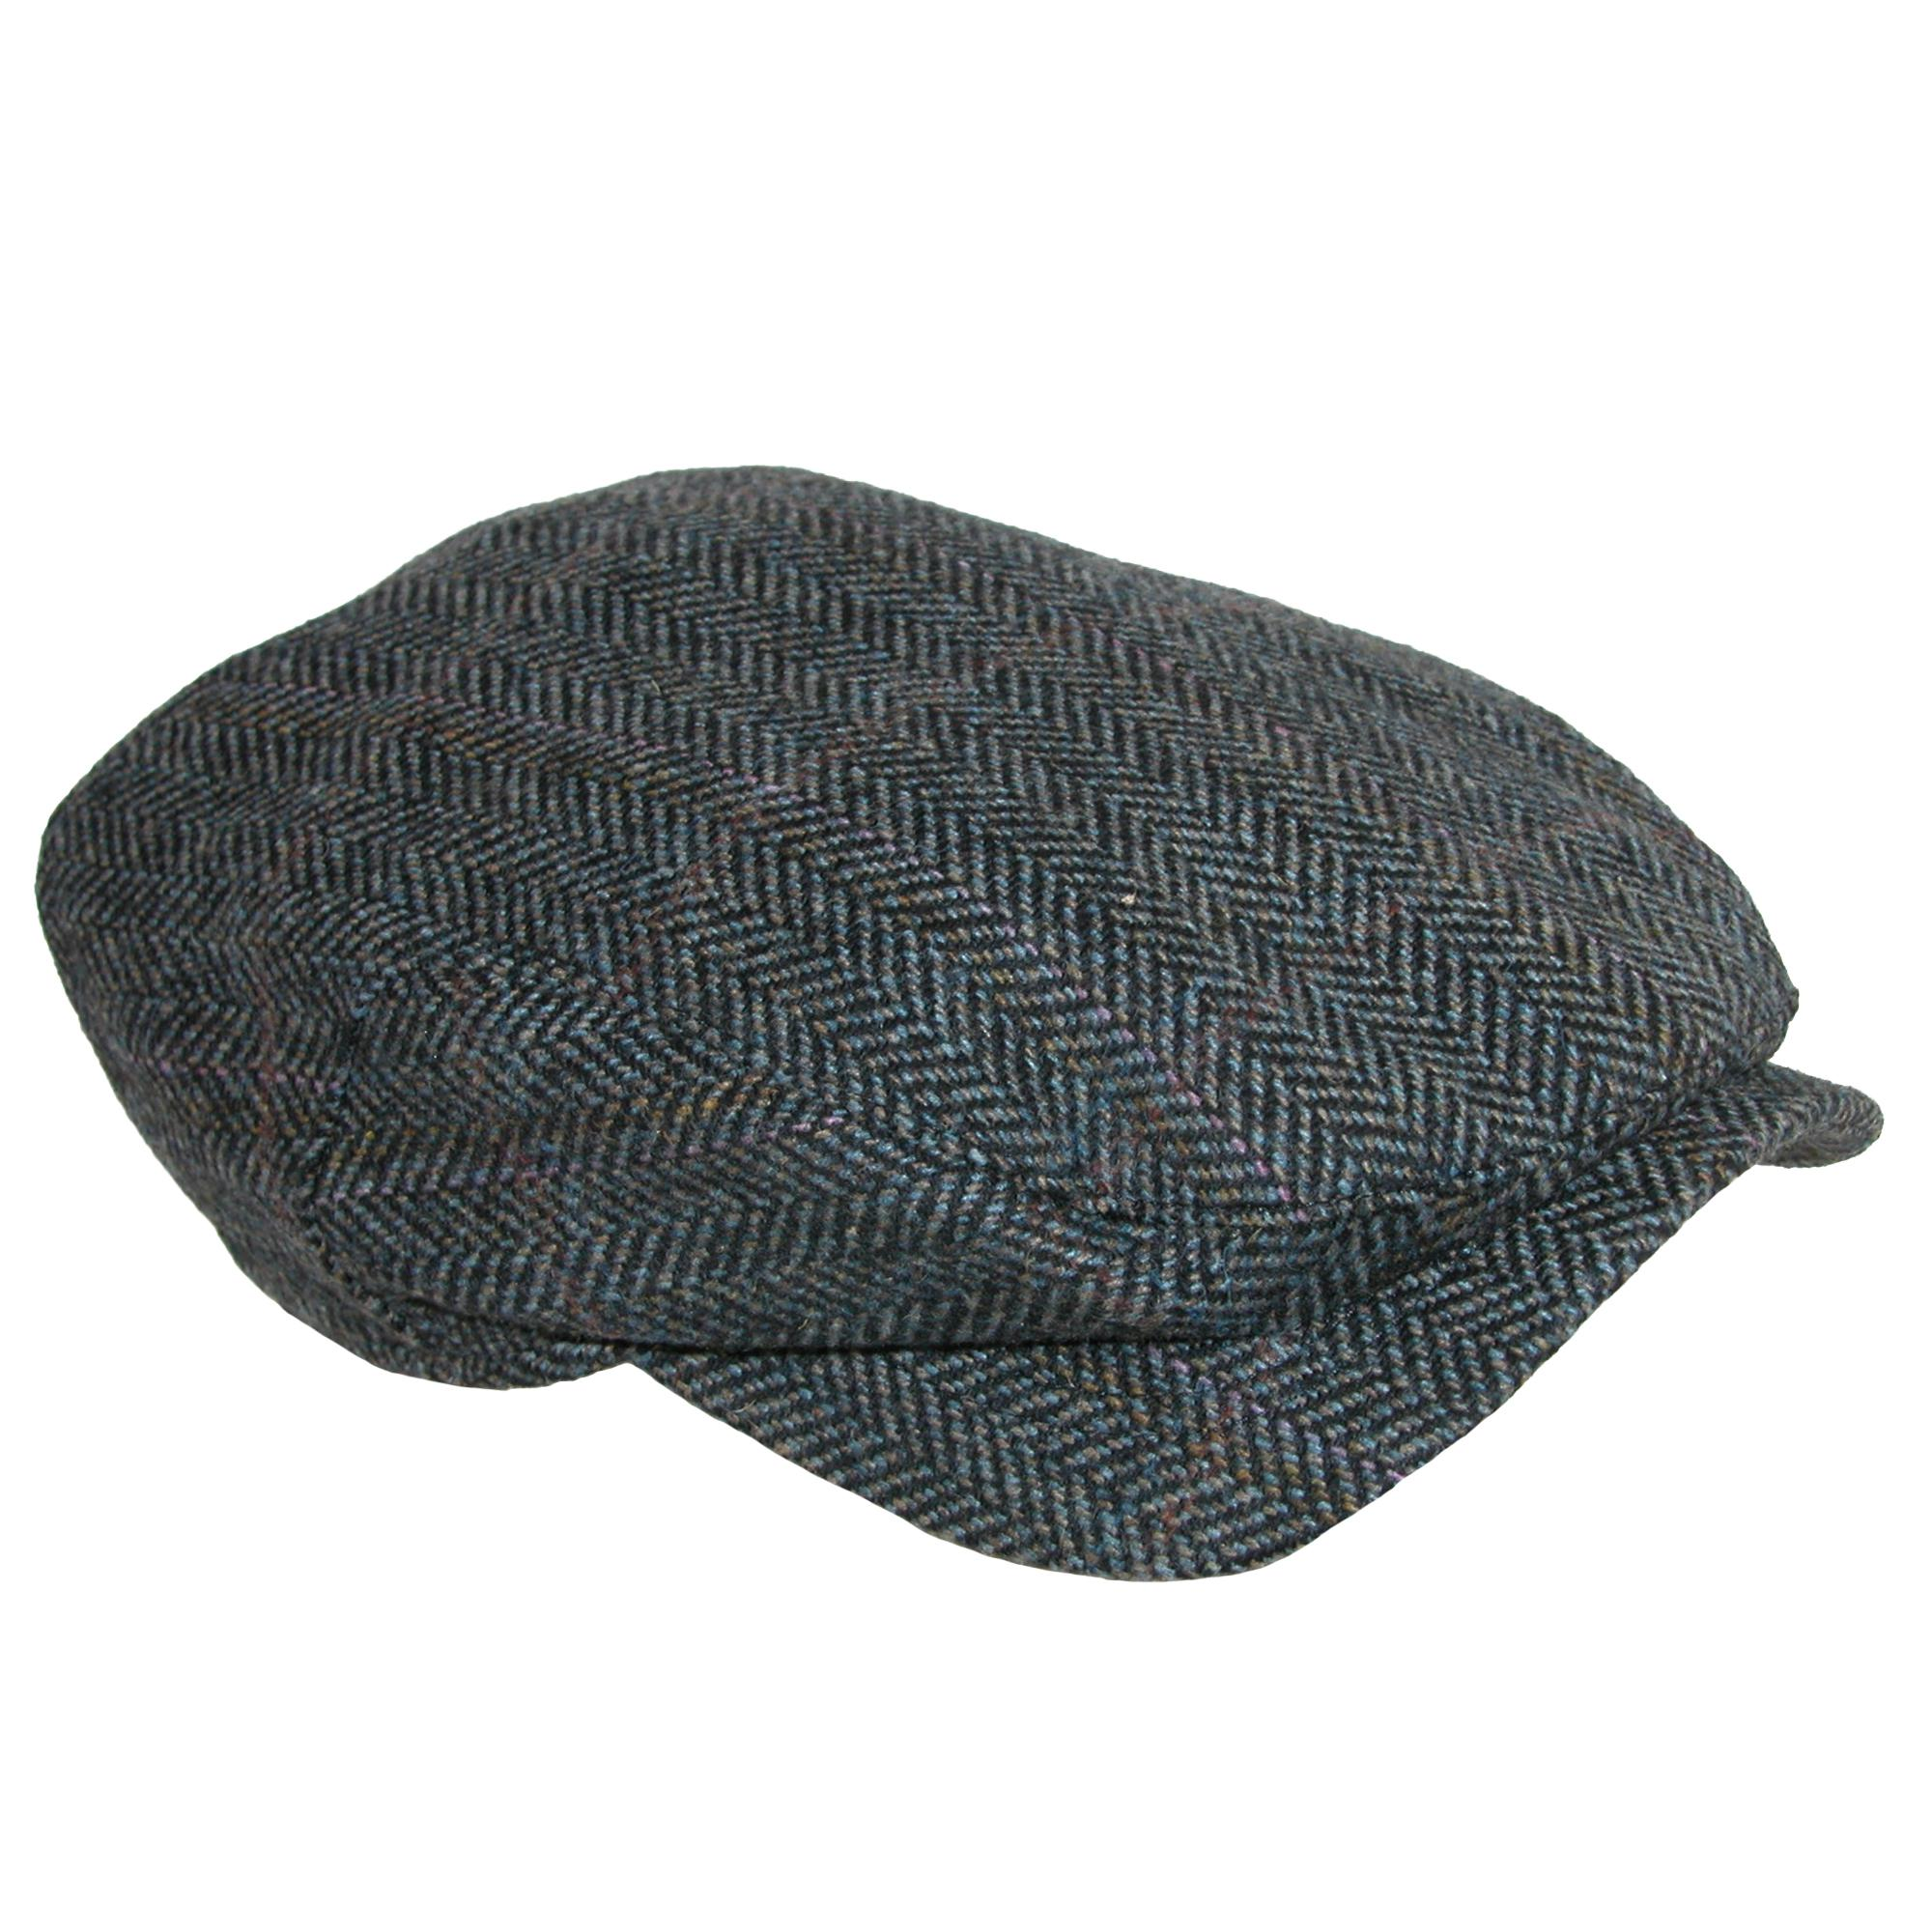 Wigens Men's Ivy Contemporary Herringbone Cap